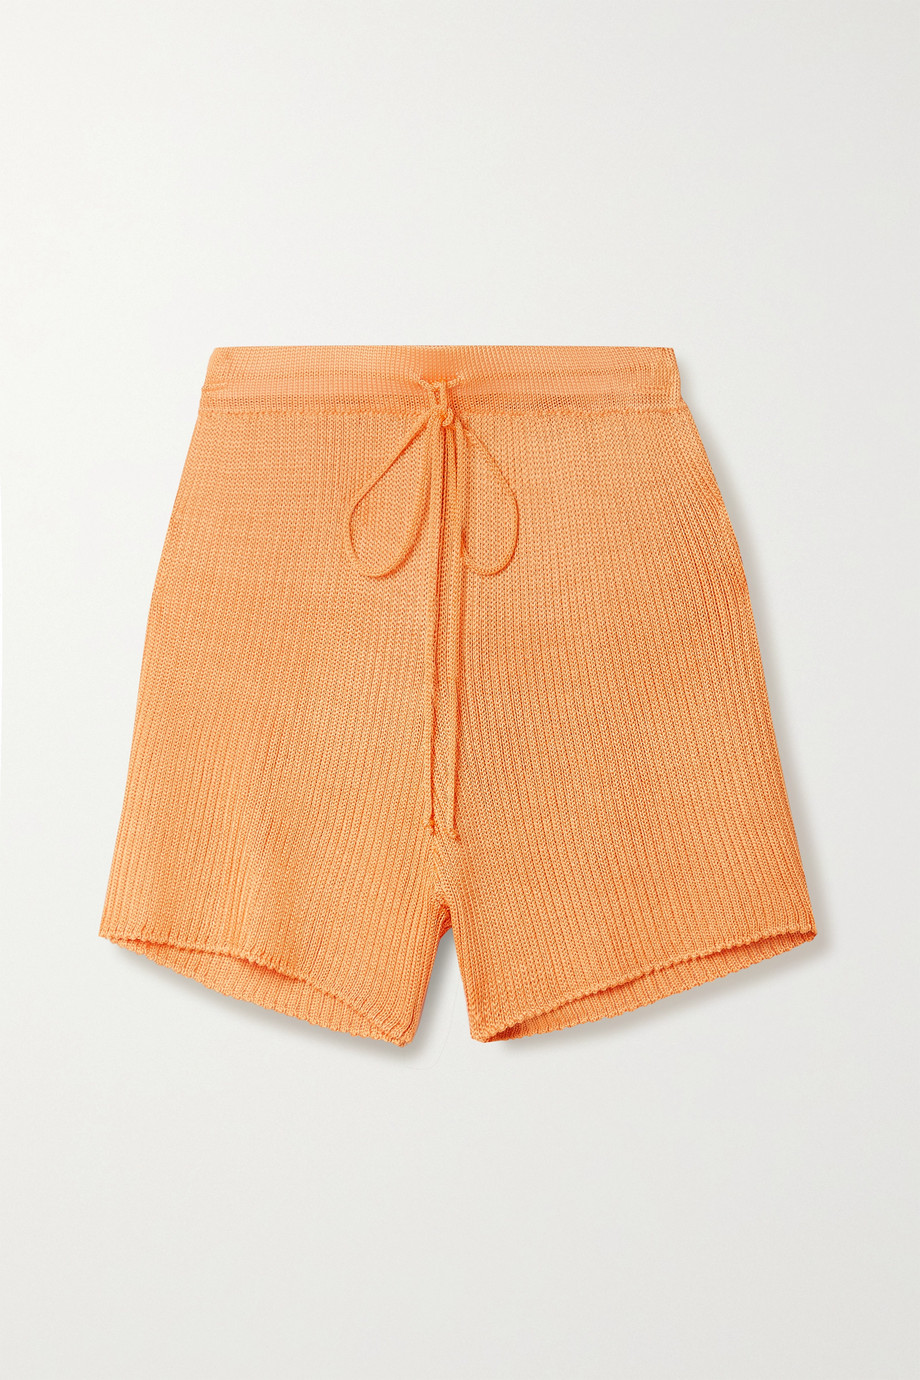 Calle Del Mar + NET SUSTAIN ribbed-knit shorts